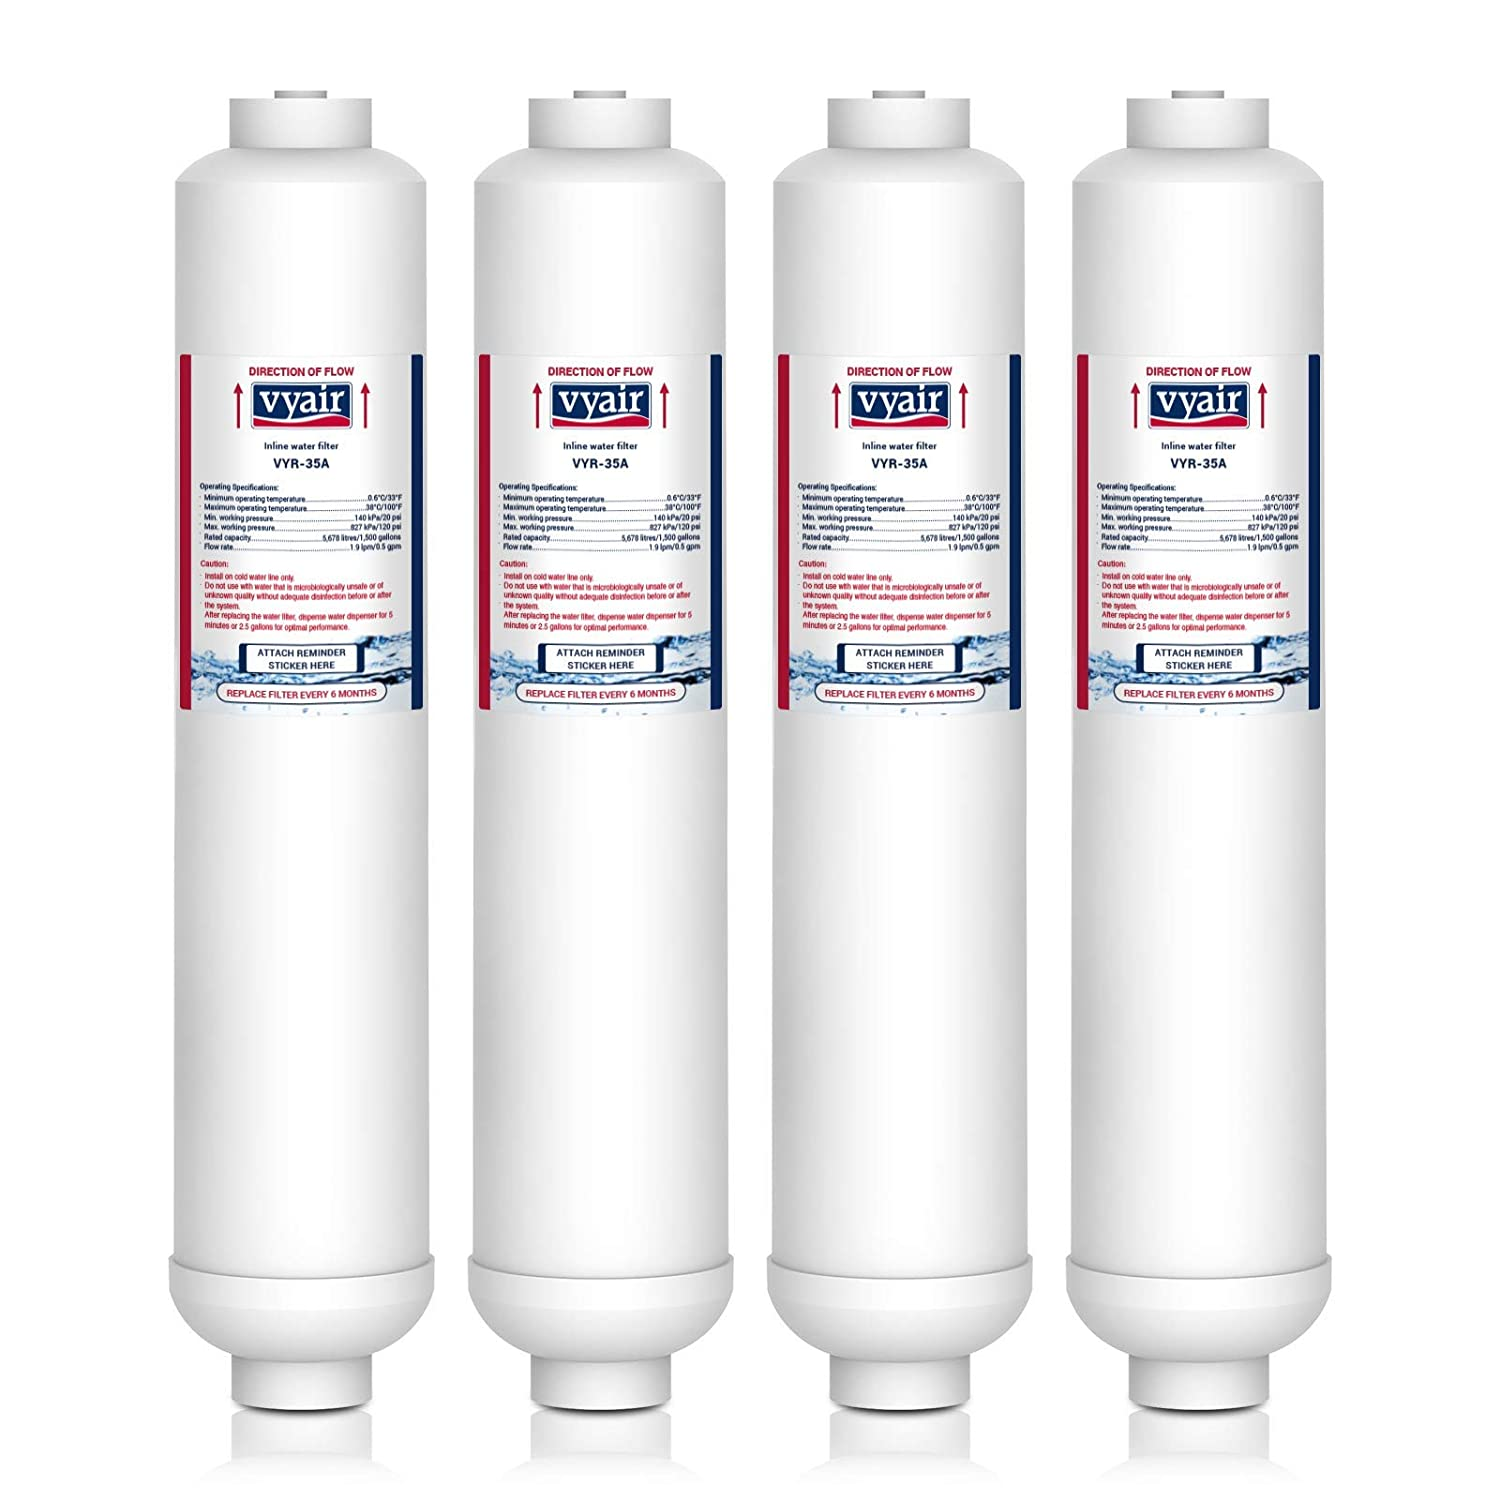 4 x VYAIR VYR-35A Ice & Water Refrigerator Filter to fit Samsung DA2010CB, DA29-10105C, DA29-10105E, DA29-10105J, EF-9603, HAFEX-EXP, K32010CB, K3MFC2010F, Magic Water Filter, WSF-100, WSF100 v2